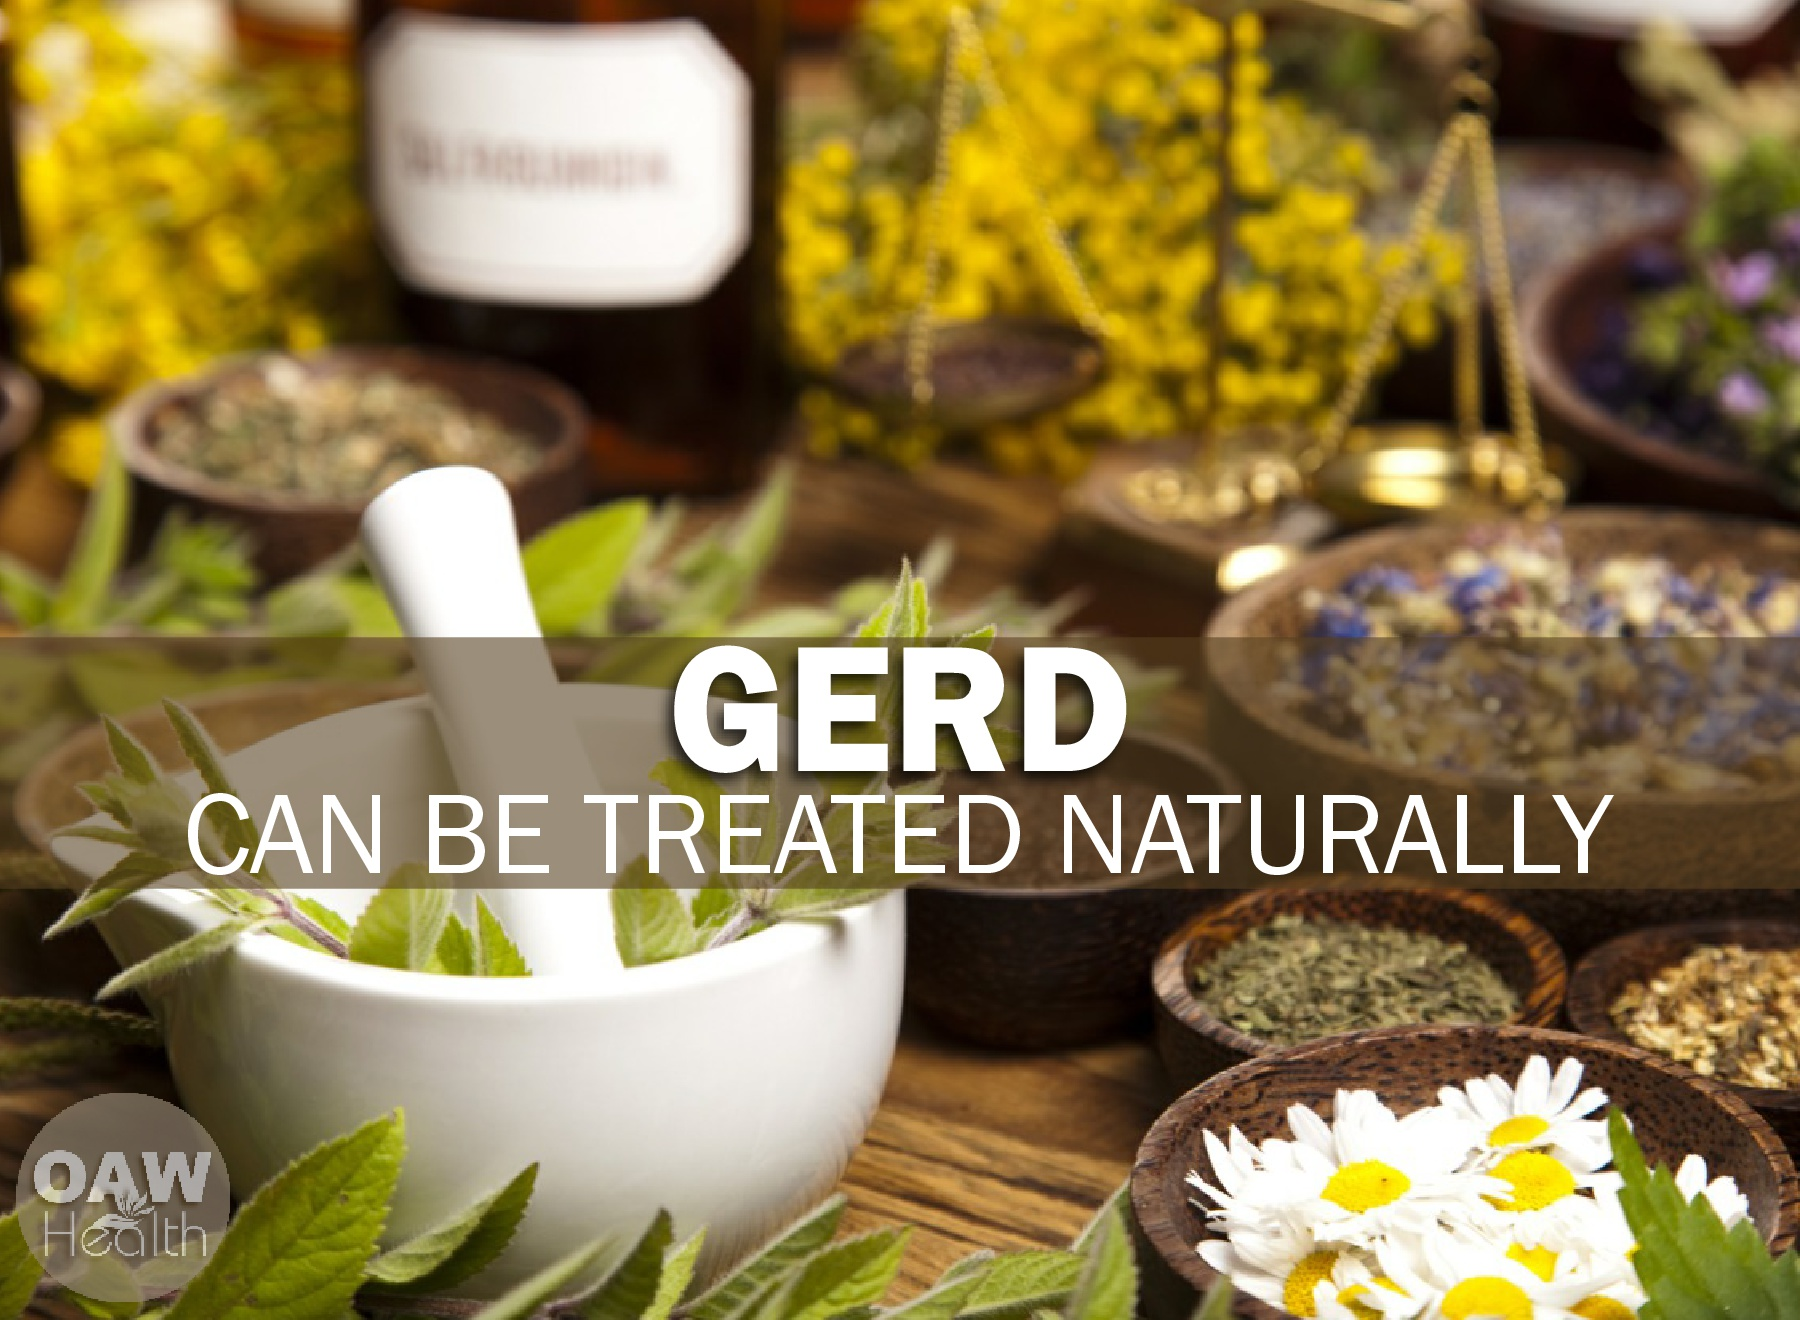 GERD Can Be Treated Naturally